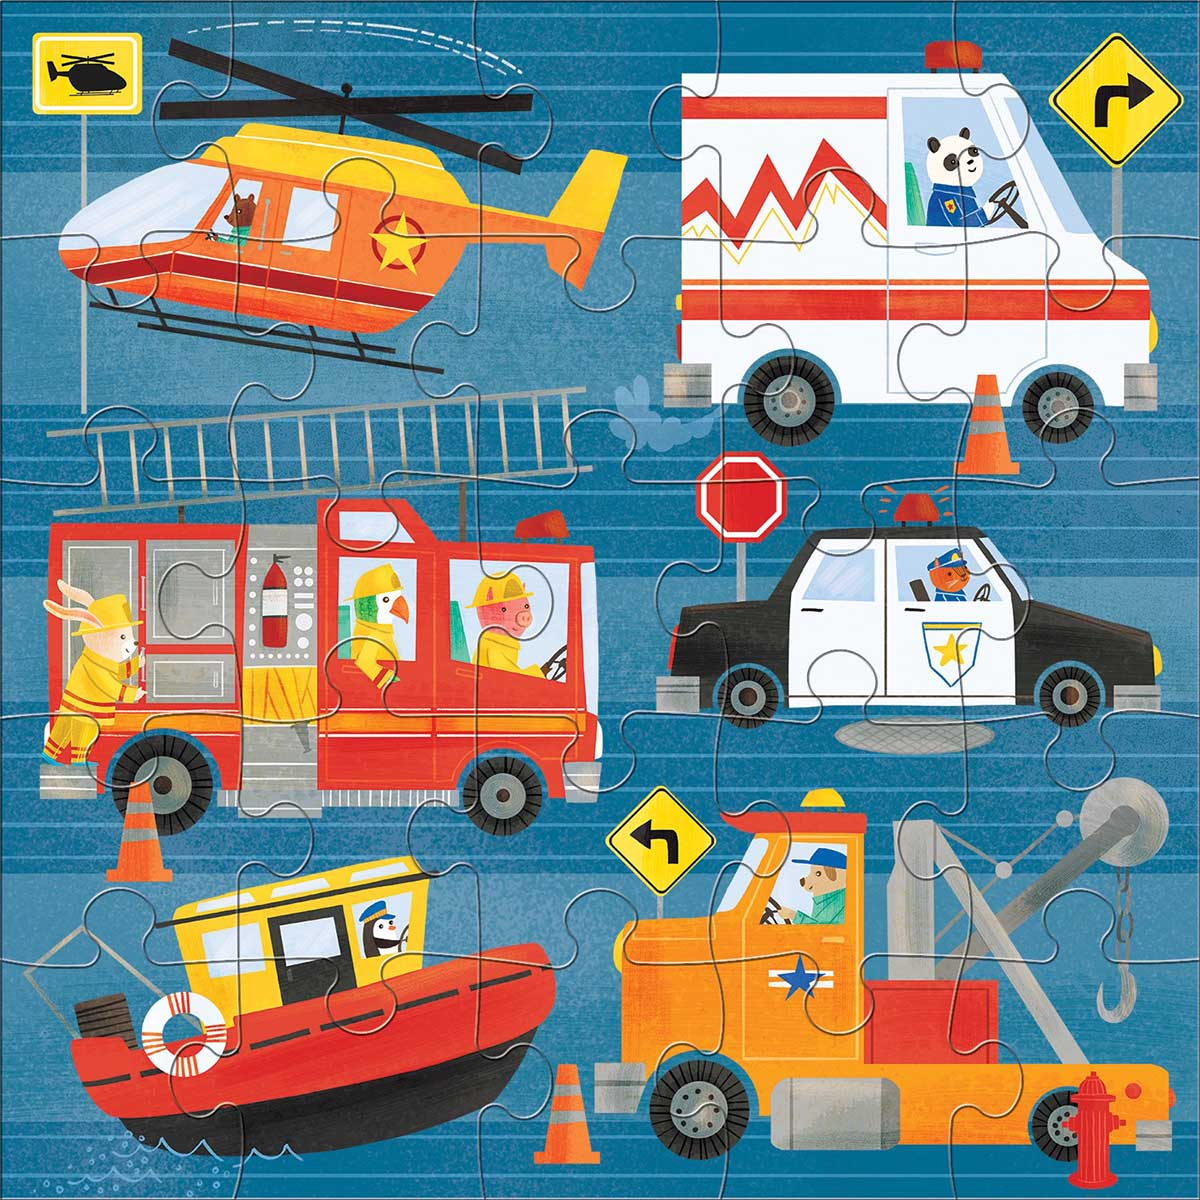 To the Rescue Fantasy Jigsaw Puzzle